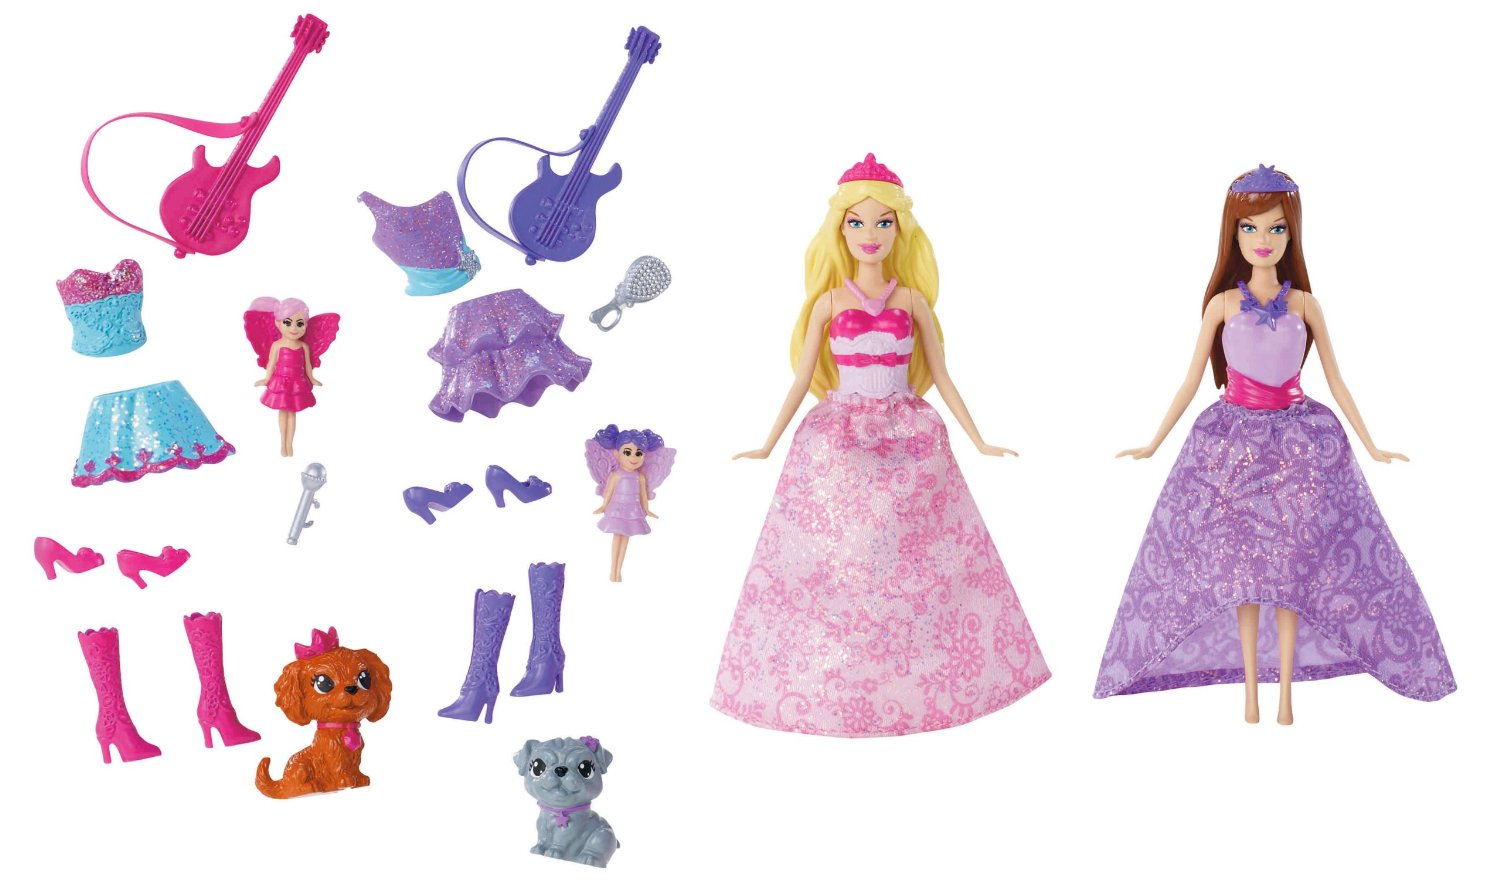 New Princess Coloring Pages : Barbie swan princess coloring pages ratejna